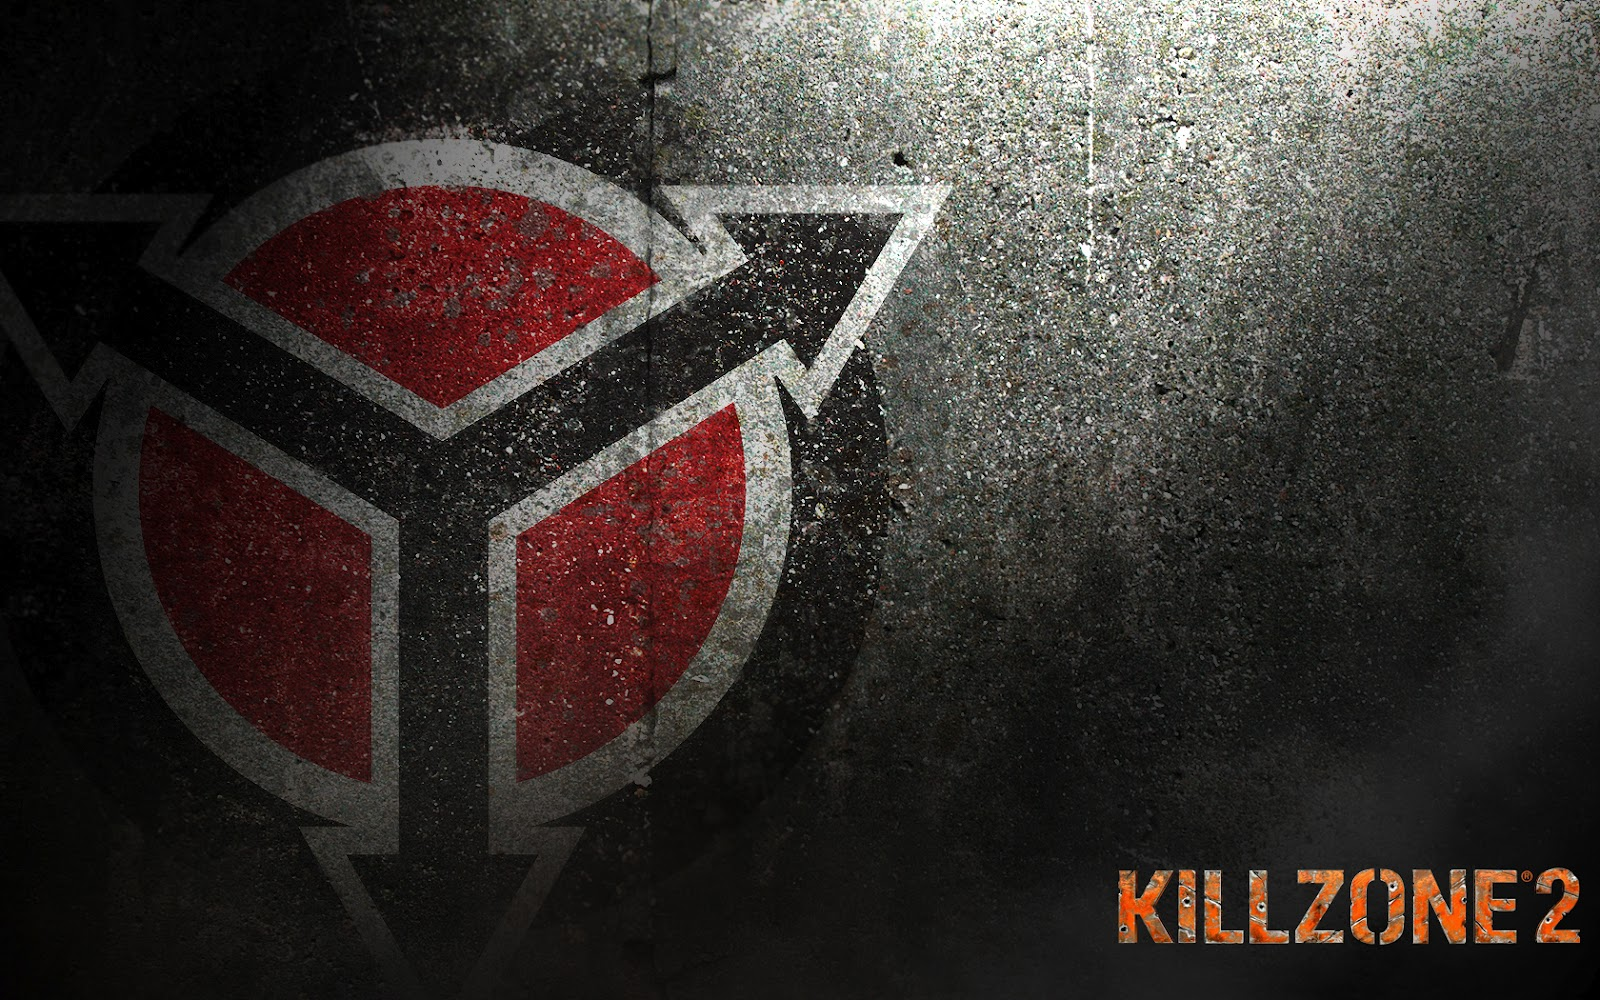 http://4.bp.blogspot.com/-MrnNPihXVko/T2Ti1OmT9QI/AAAAAAAAA38/Npx6G72oGT8/s1600/Killzone_Helghast_Logo_Painted_on_Wall_HD_Wallpaper-gWb.jpg